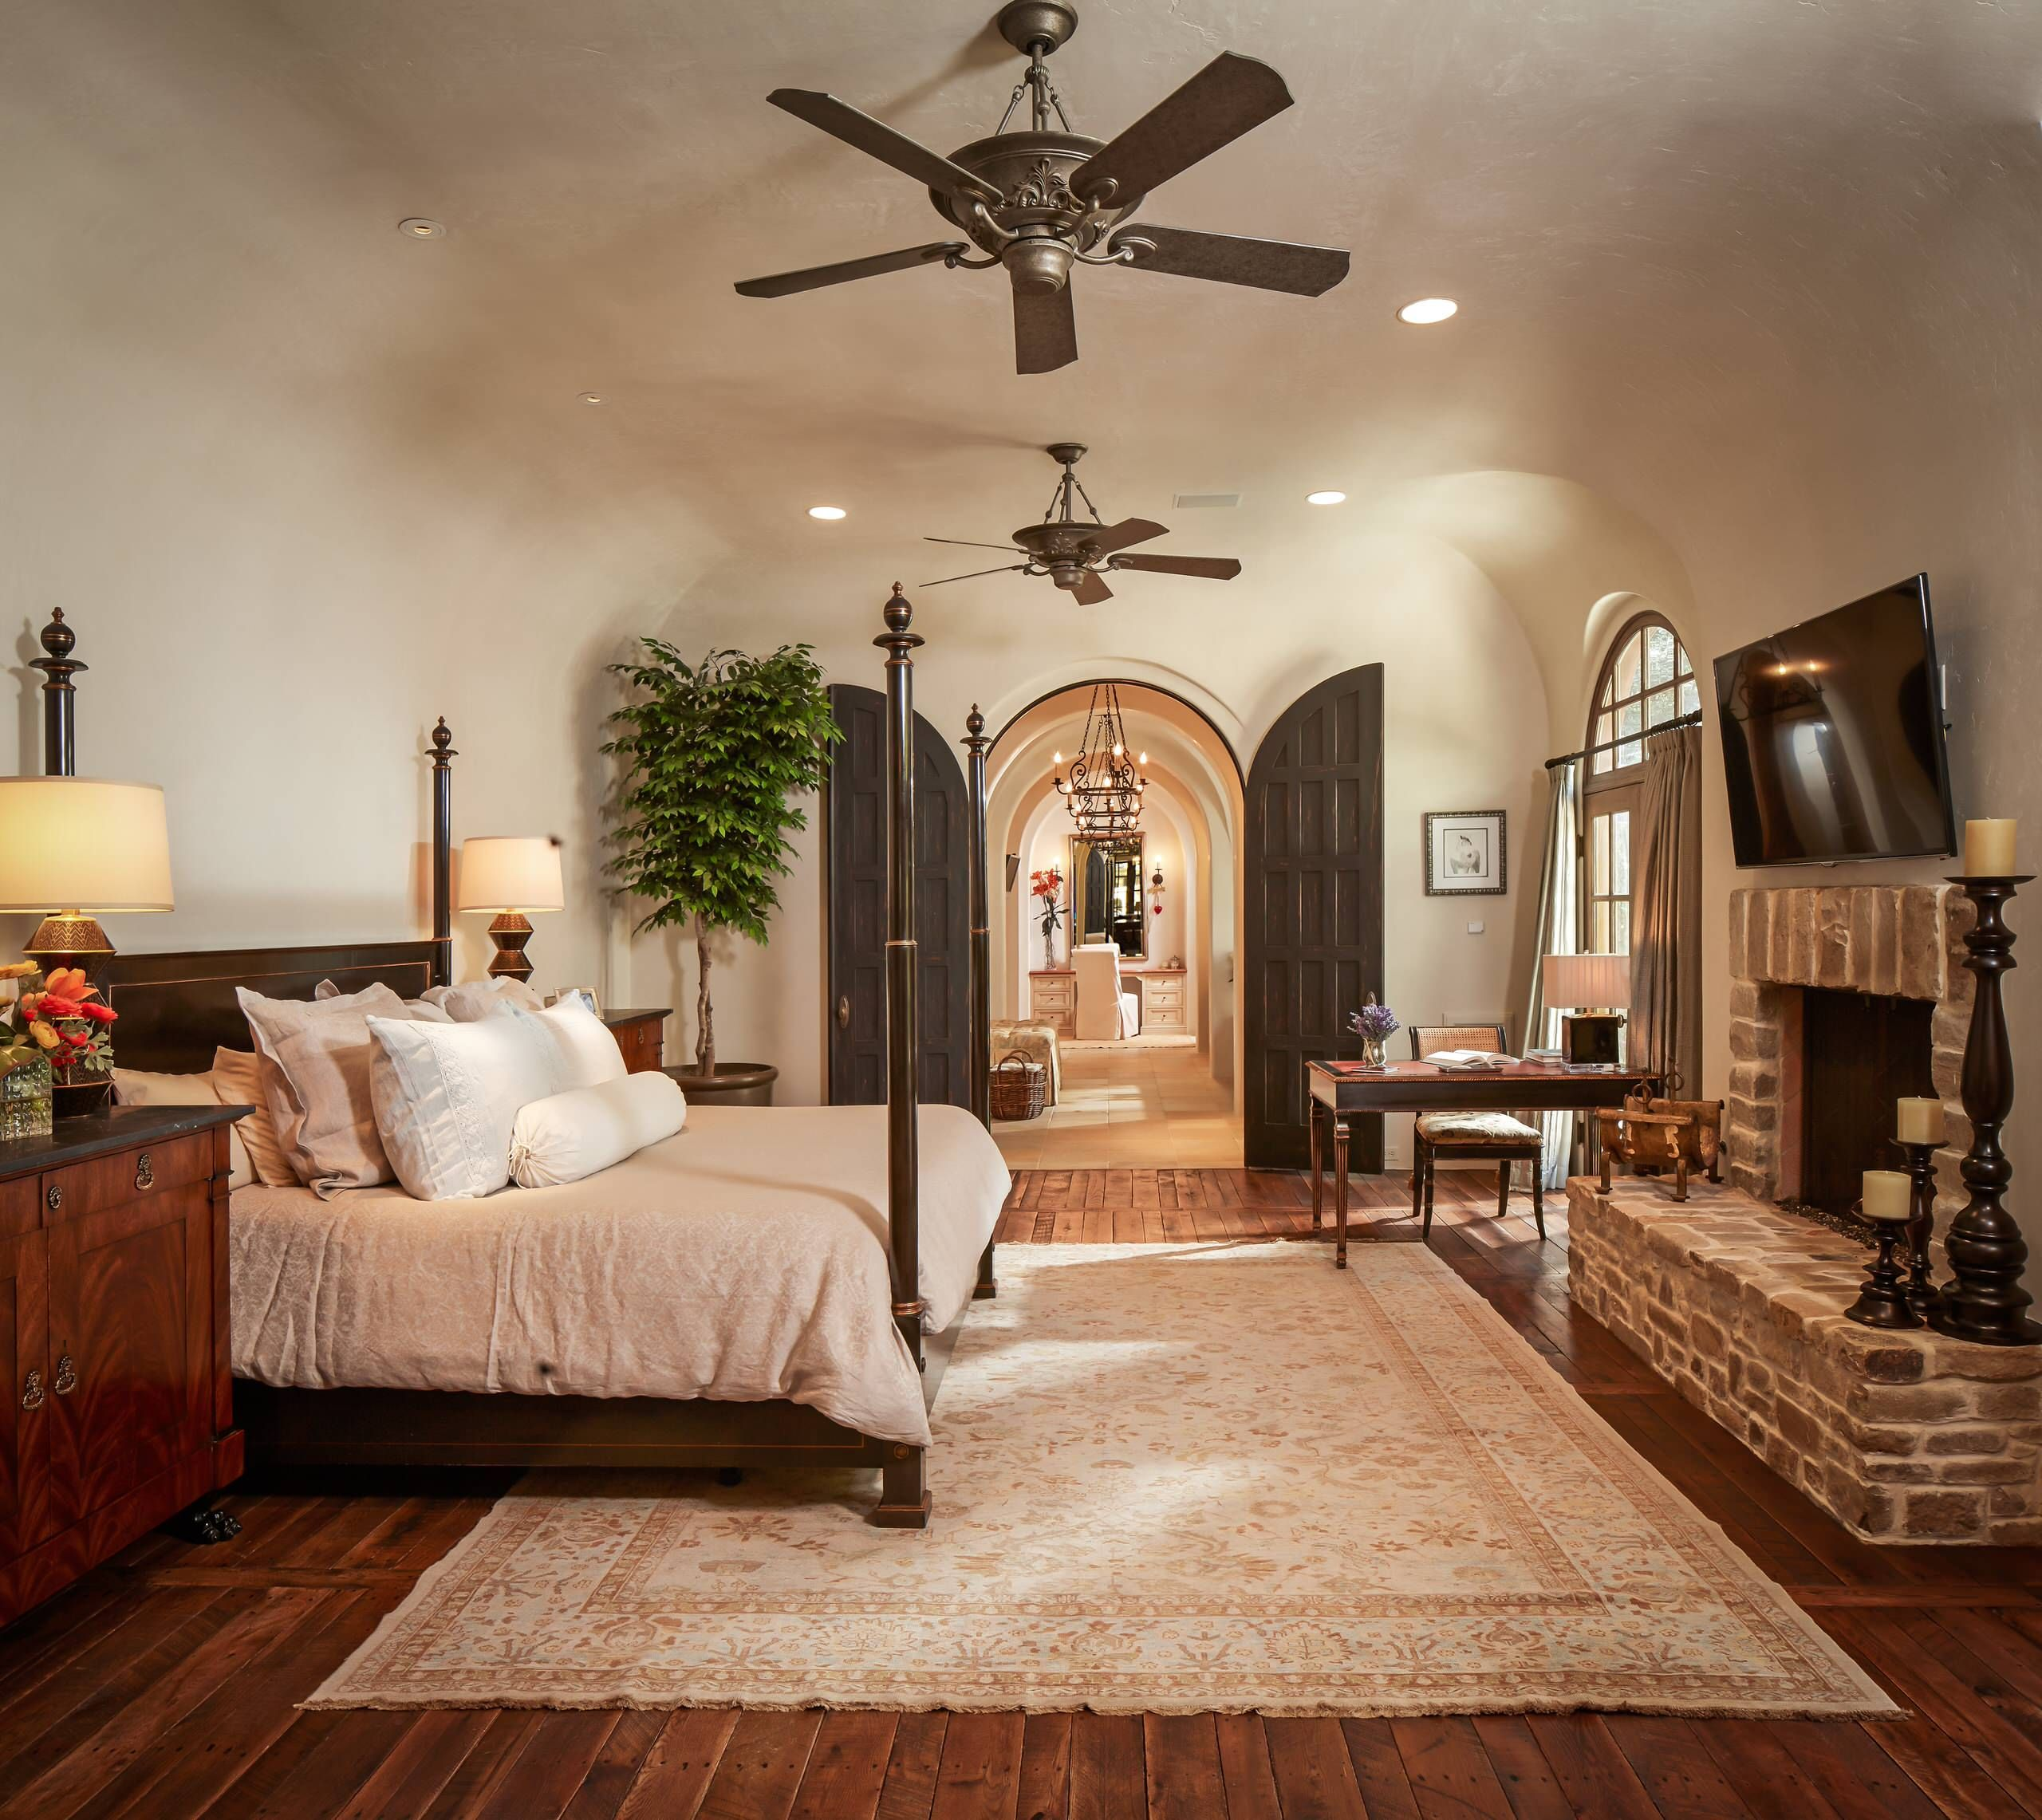 46 Eye Catching Master Bedrooms is part of Master bedroom Recamara Principal - Master bedroom design ideas that range from traditional to contemporary and fit all budgets